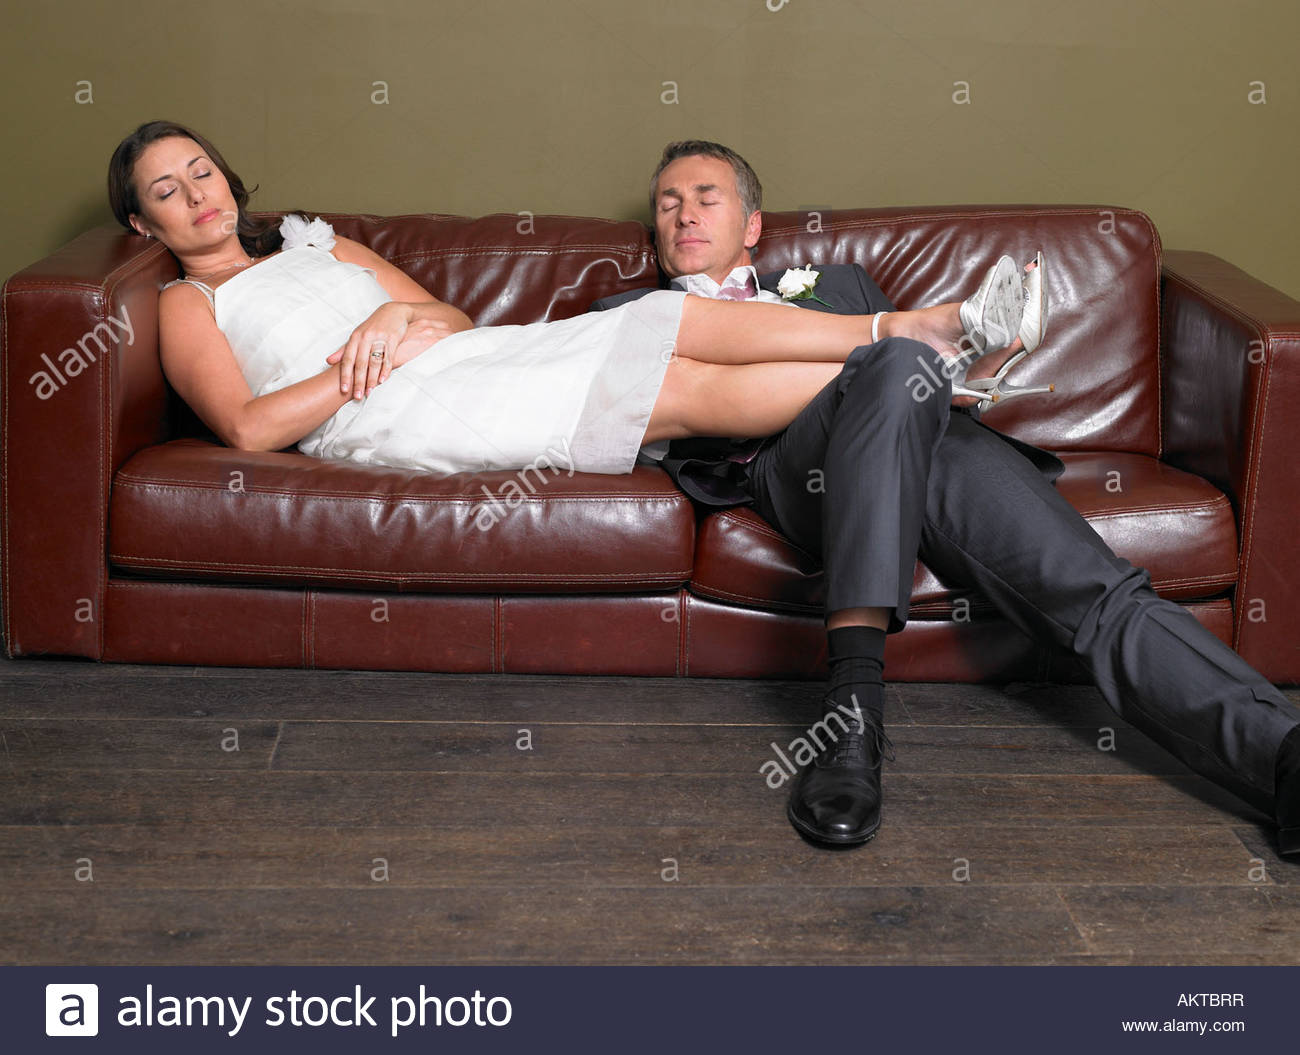 Bride and groom aslepp on a sofa - Stock Image